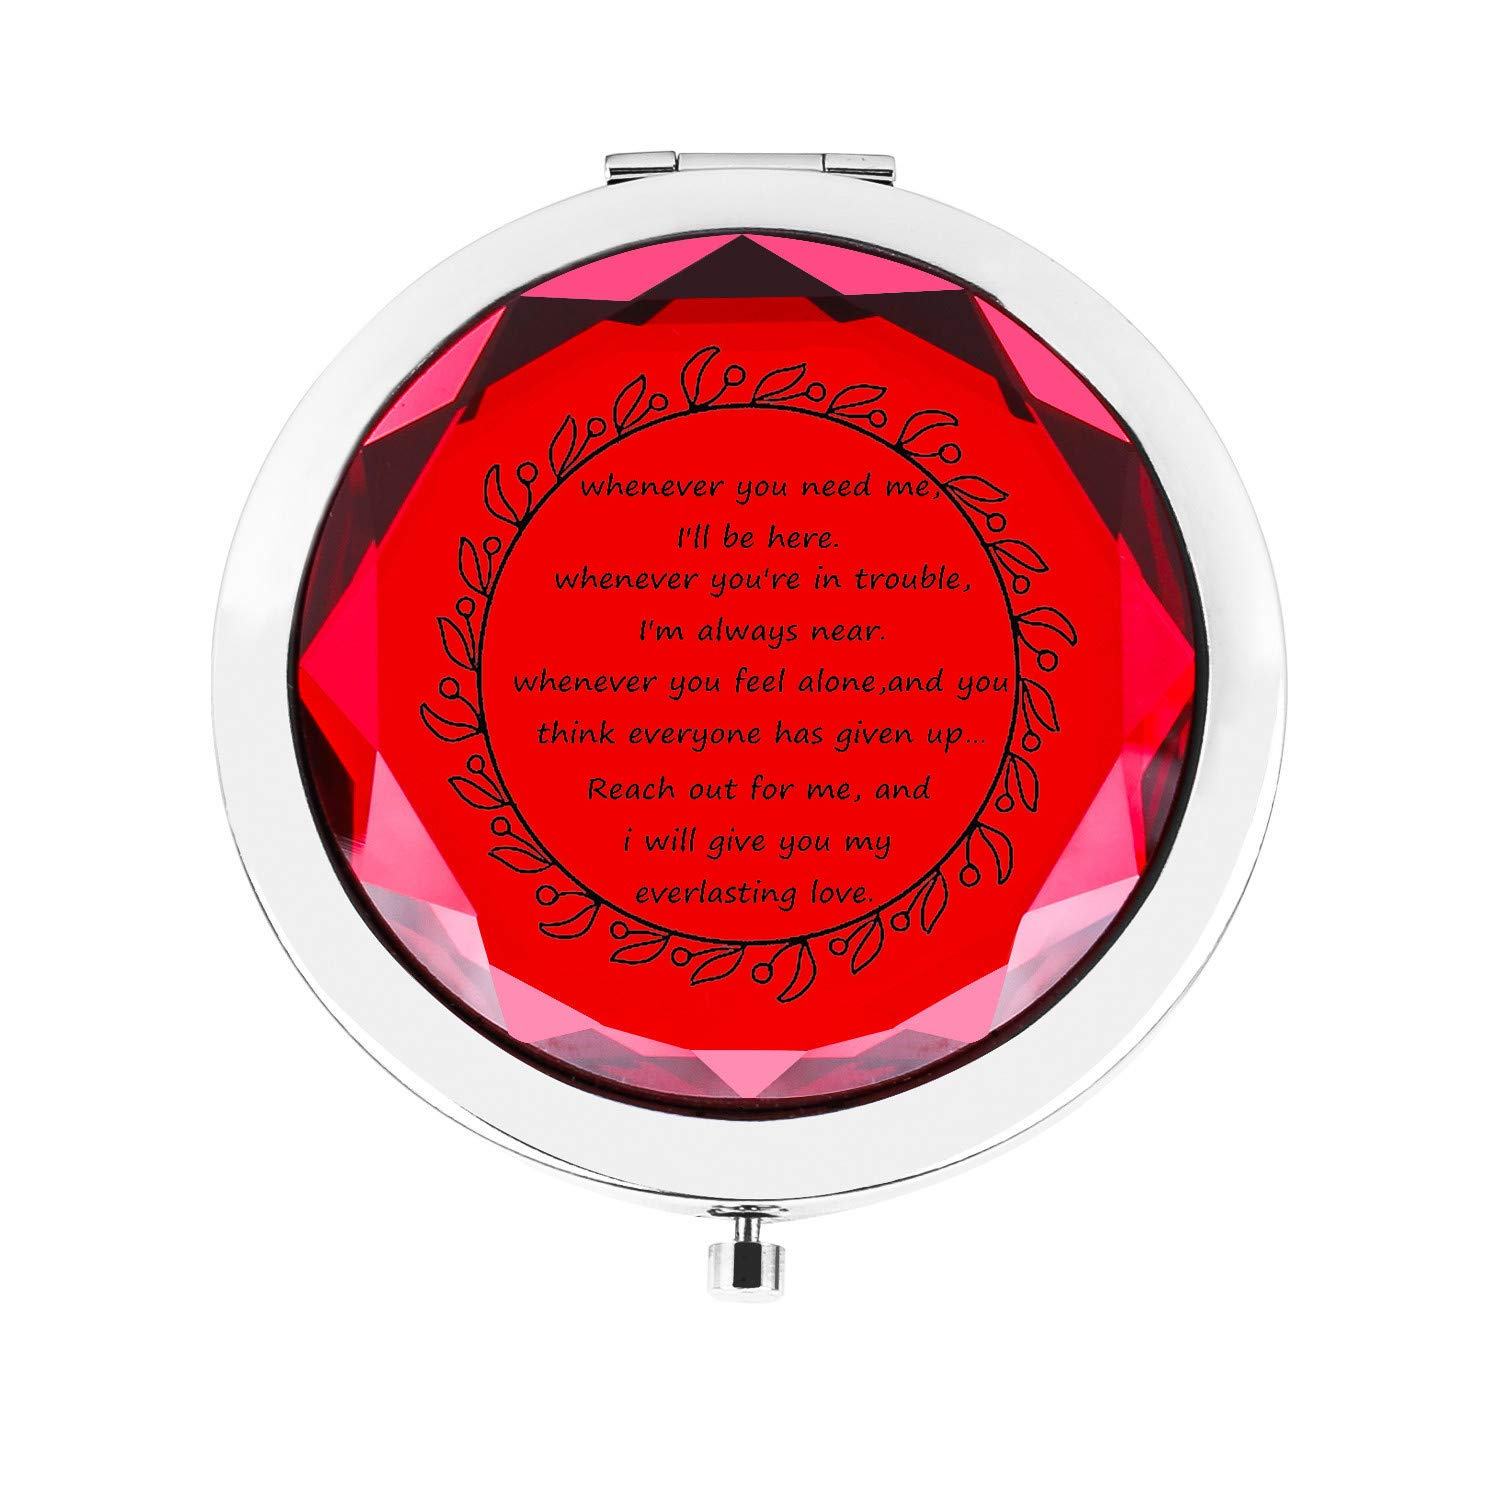 23guanyi Birthday Valentines Anniversary Christmas Mothers Day Women Gifts For Her Women Wife Girlfriend Best Friends Mom Daughter Sister Aunt Personalized Gift Ideas Red Whenever You Need Me Amazon In Beauty